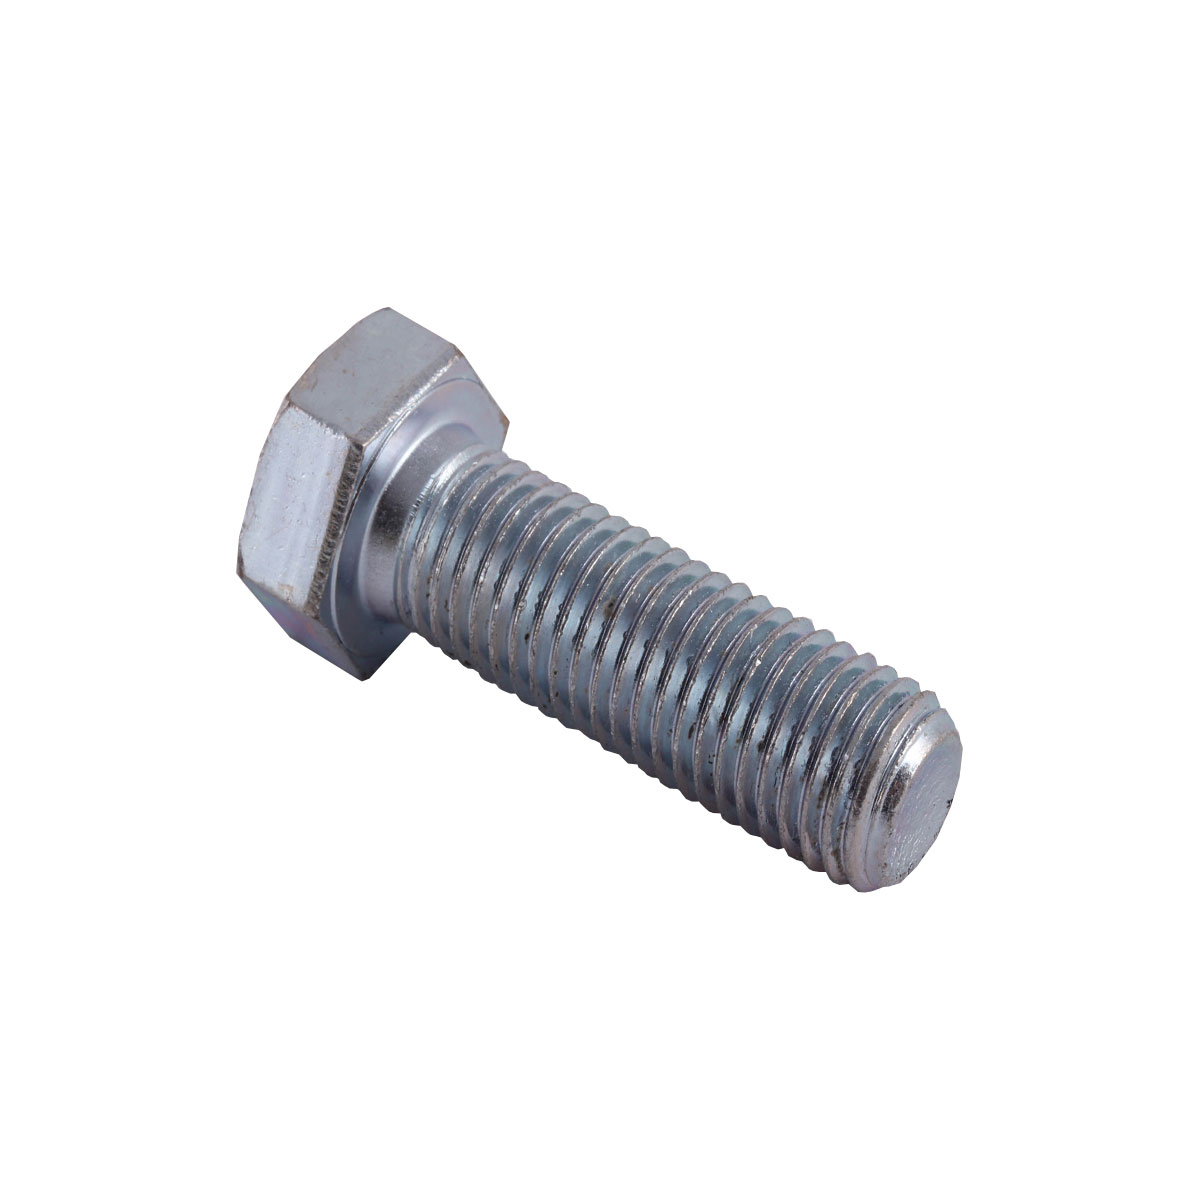 Ss316 grade 8.8 hex head set screws